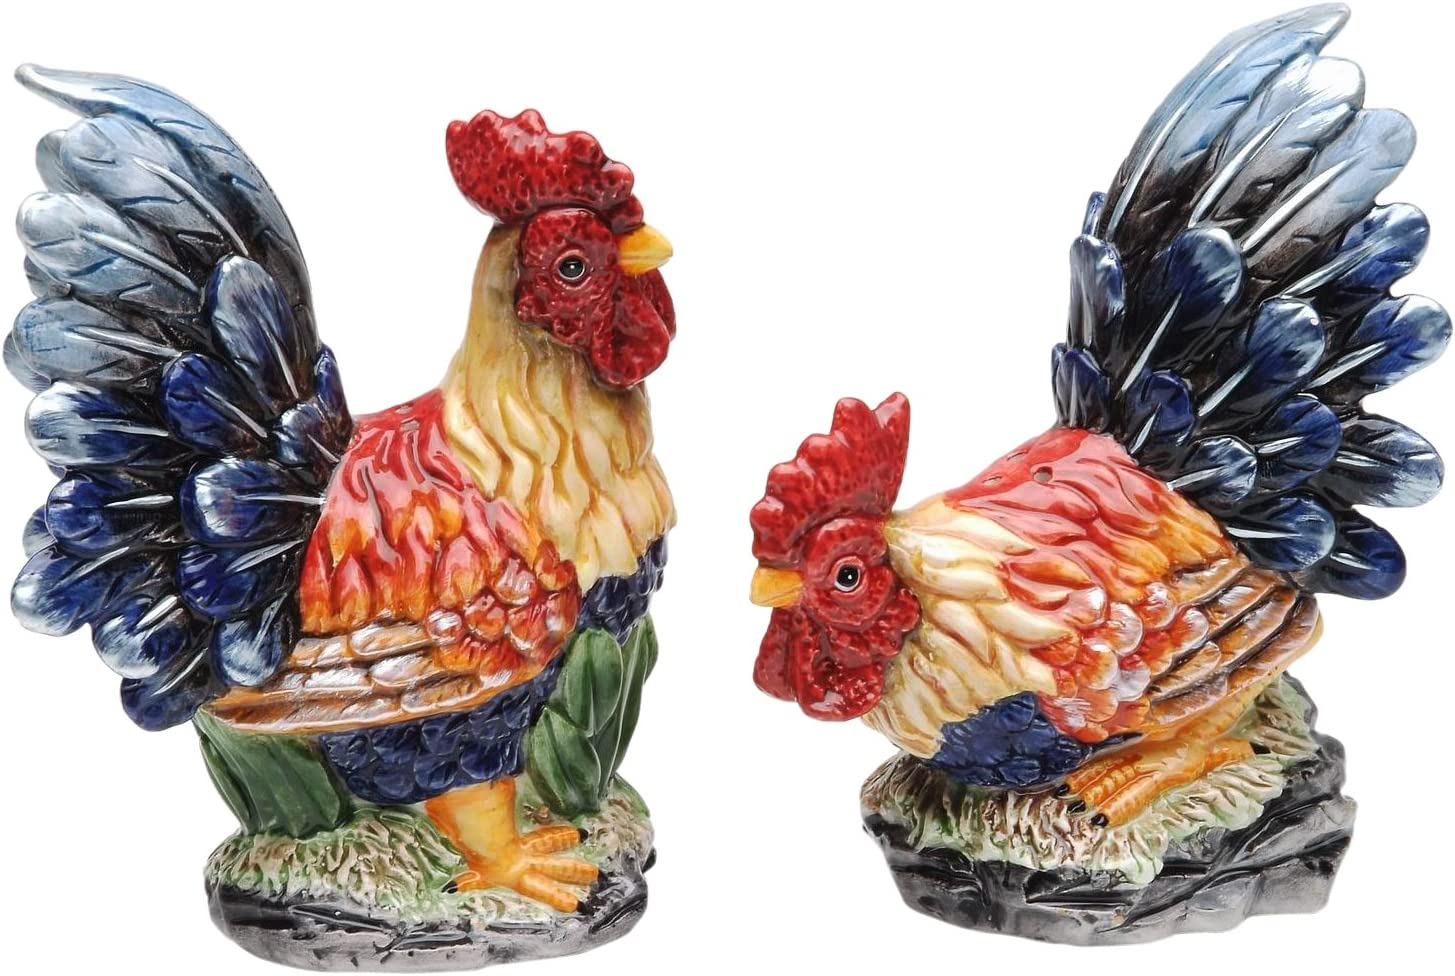 Appletree Design Barn Yard Rooster Salt and Pepper Set, 4-1/2-Inch